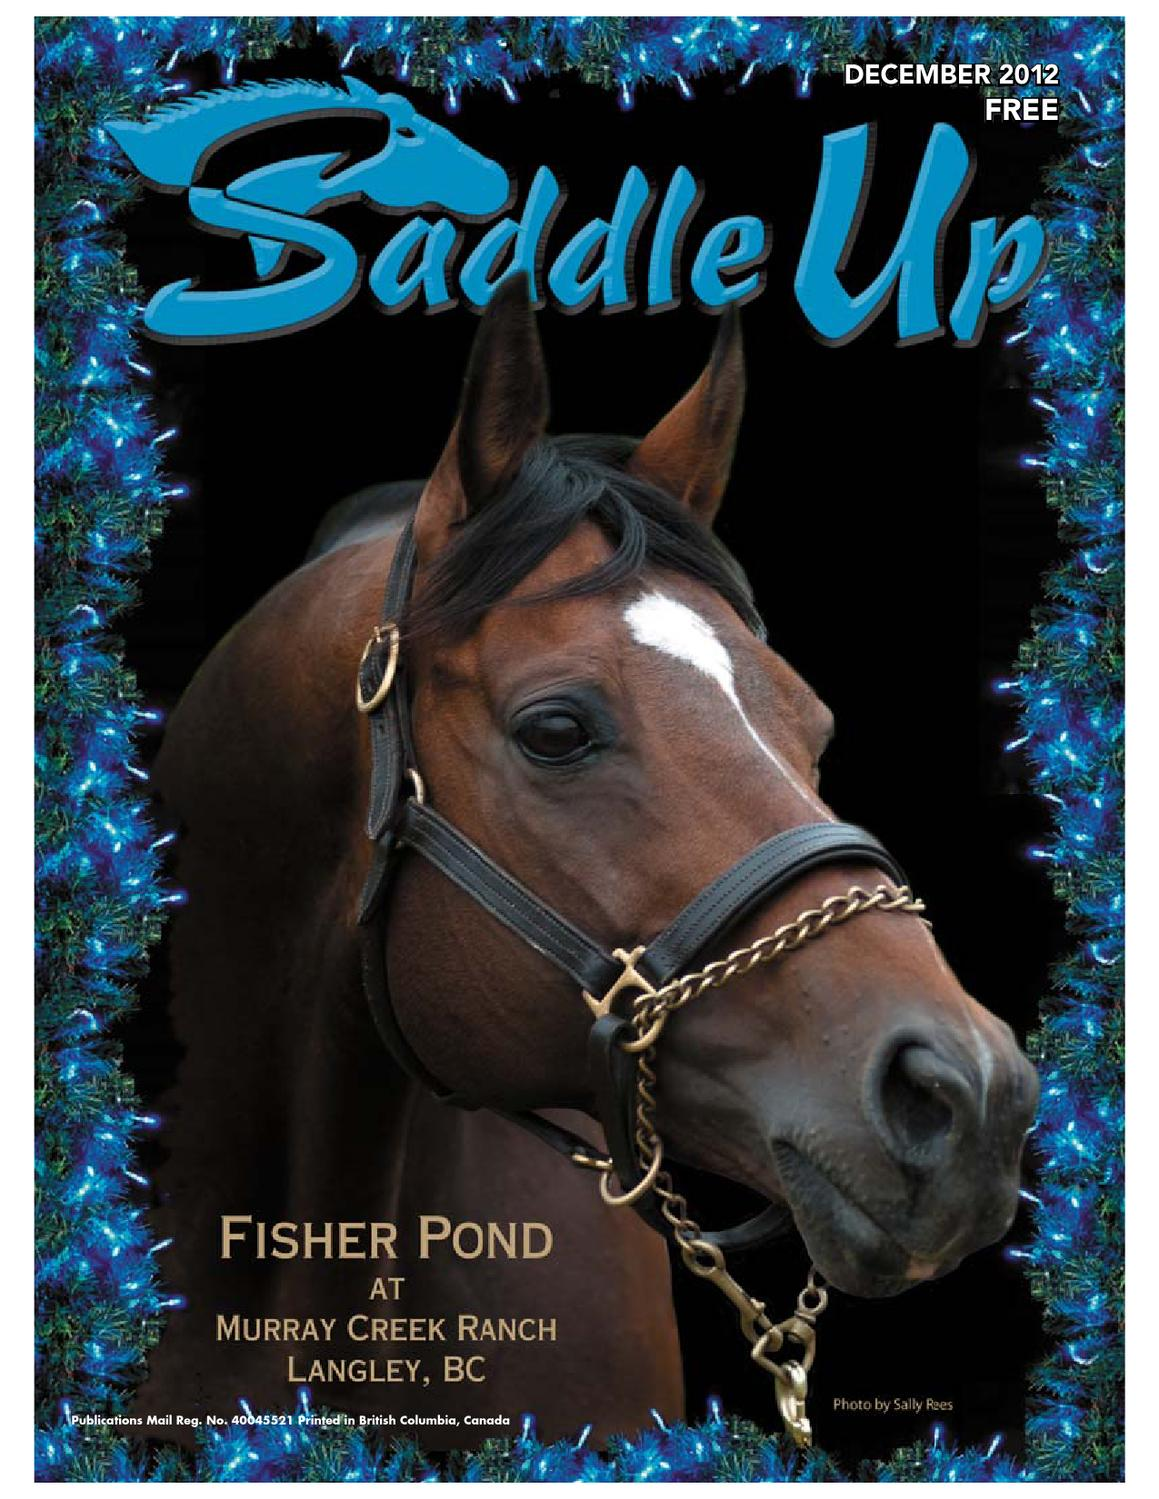 Saddle Up Dec 2012 By Magazine Issuu Model Circuit Right Duplicates The Anatomy Of Chicken